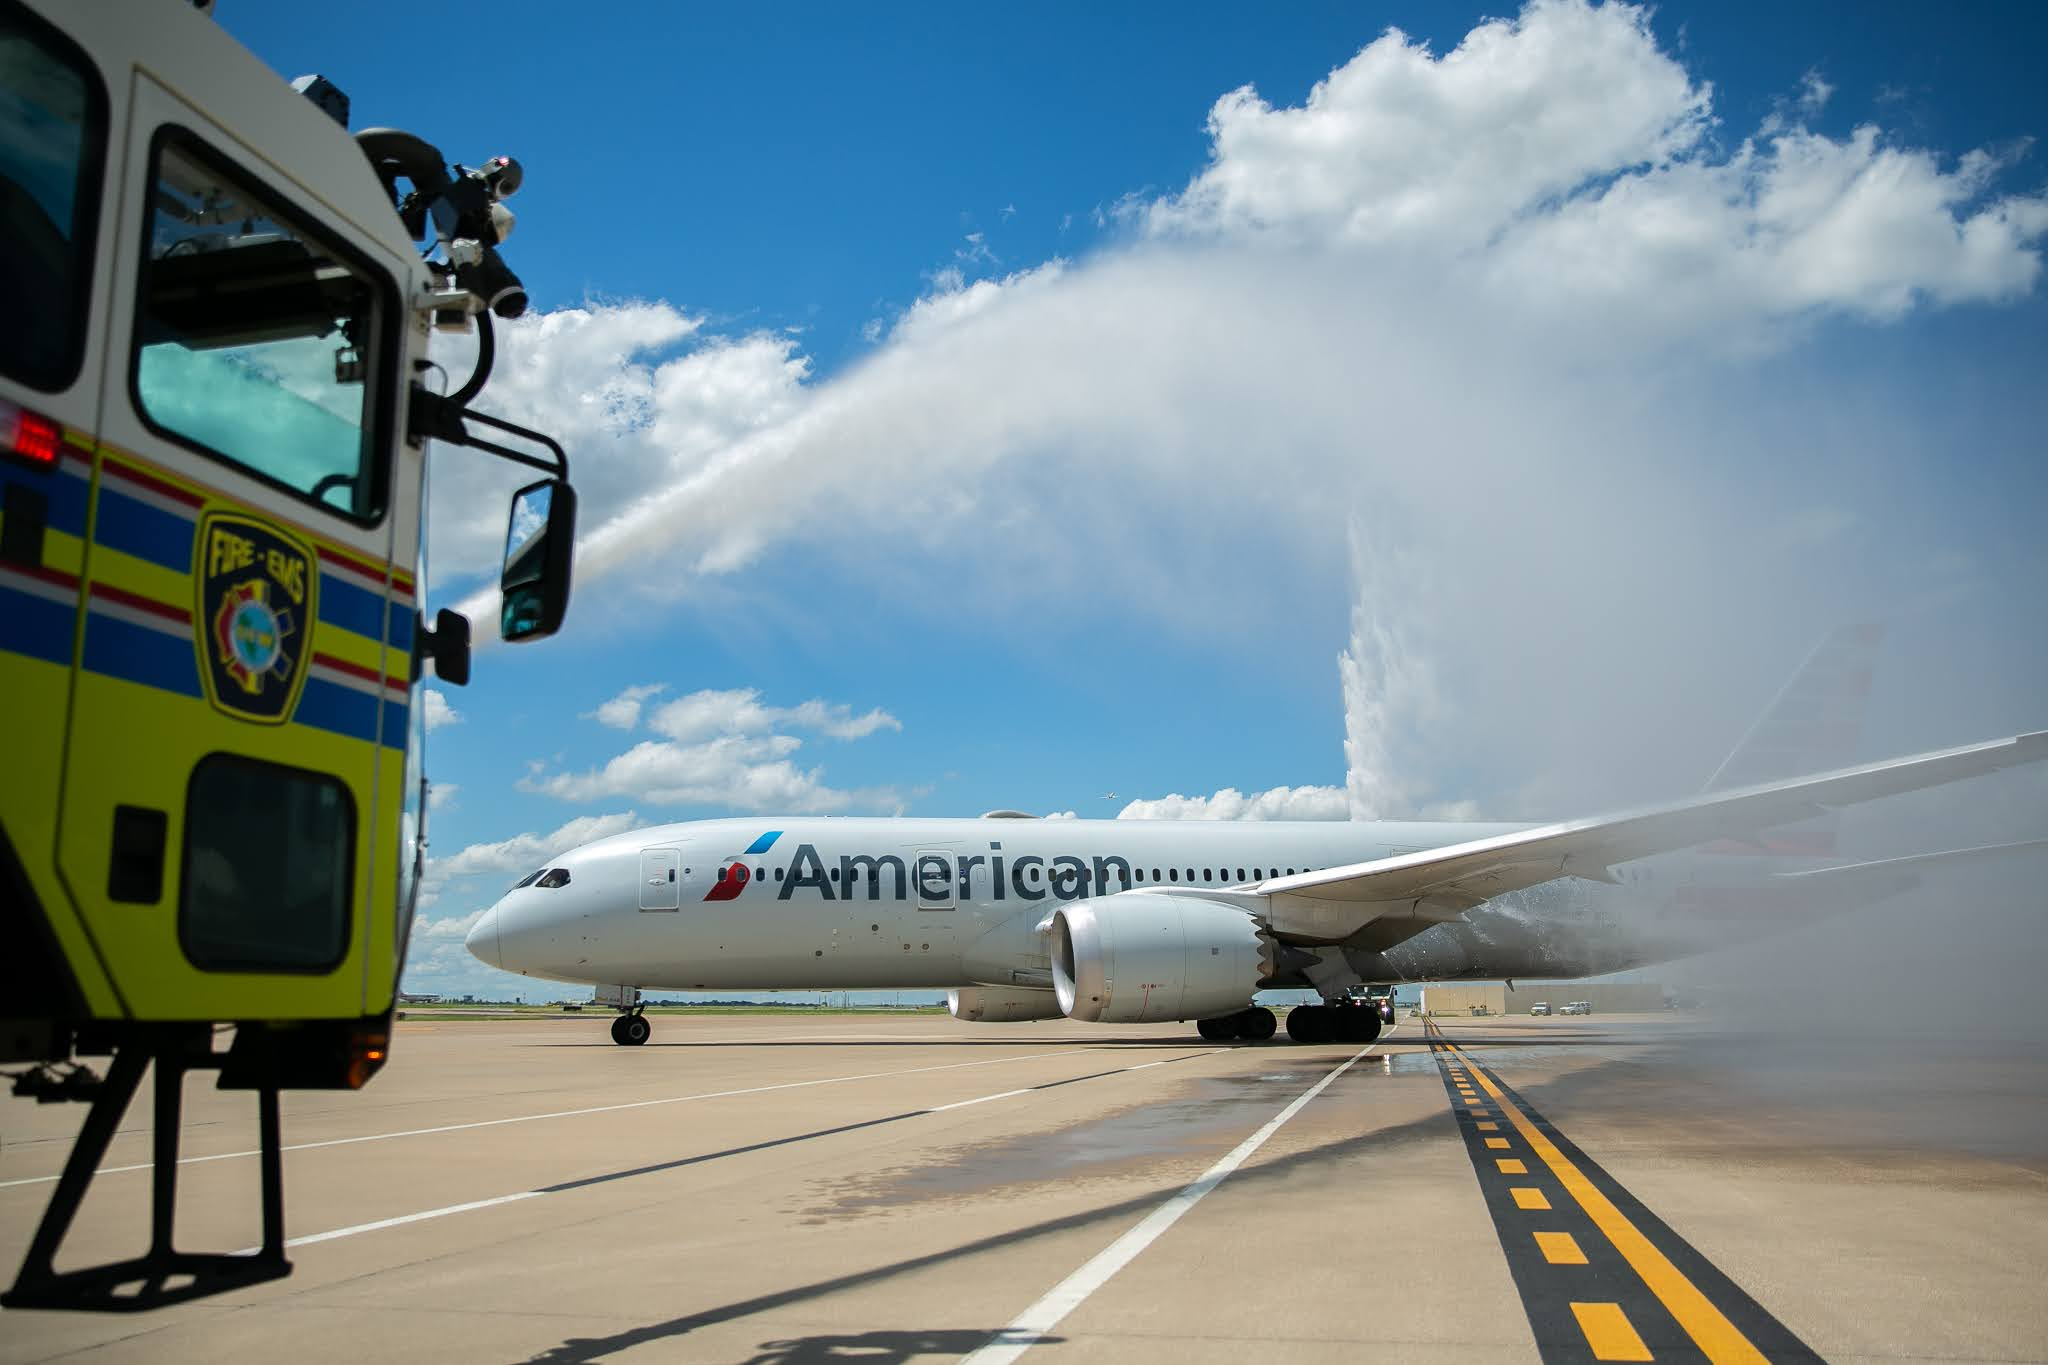 DALLAS FORT WORTH HUB AMERICAN AIRLINES 02